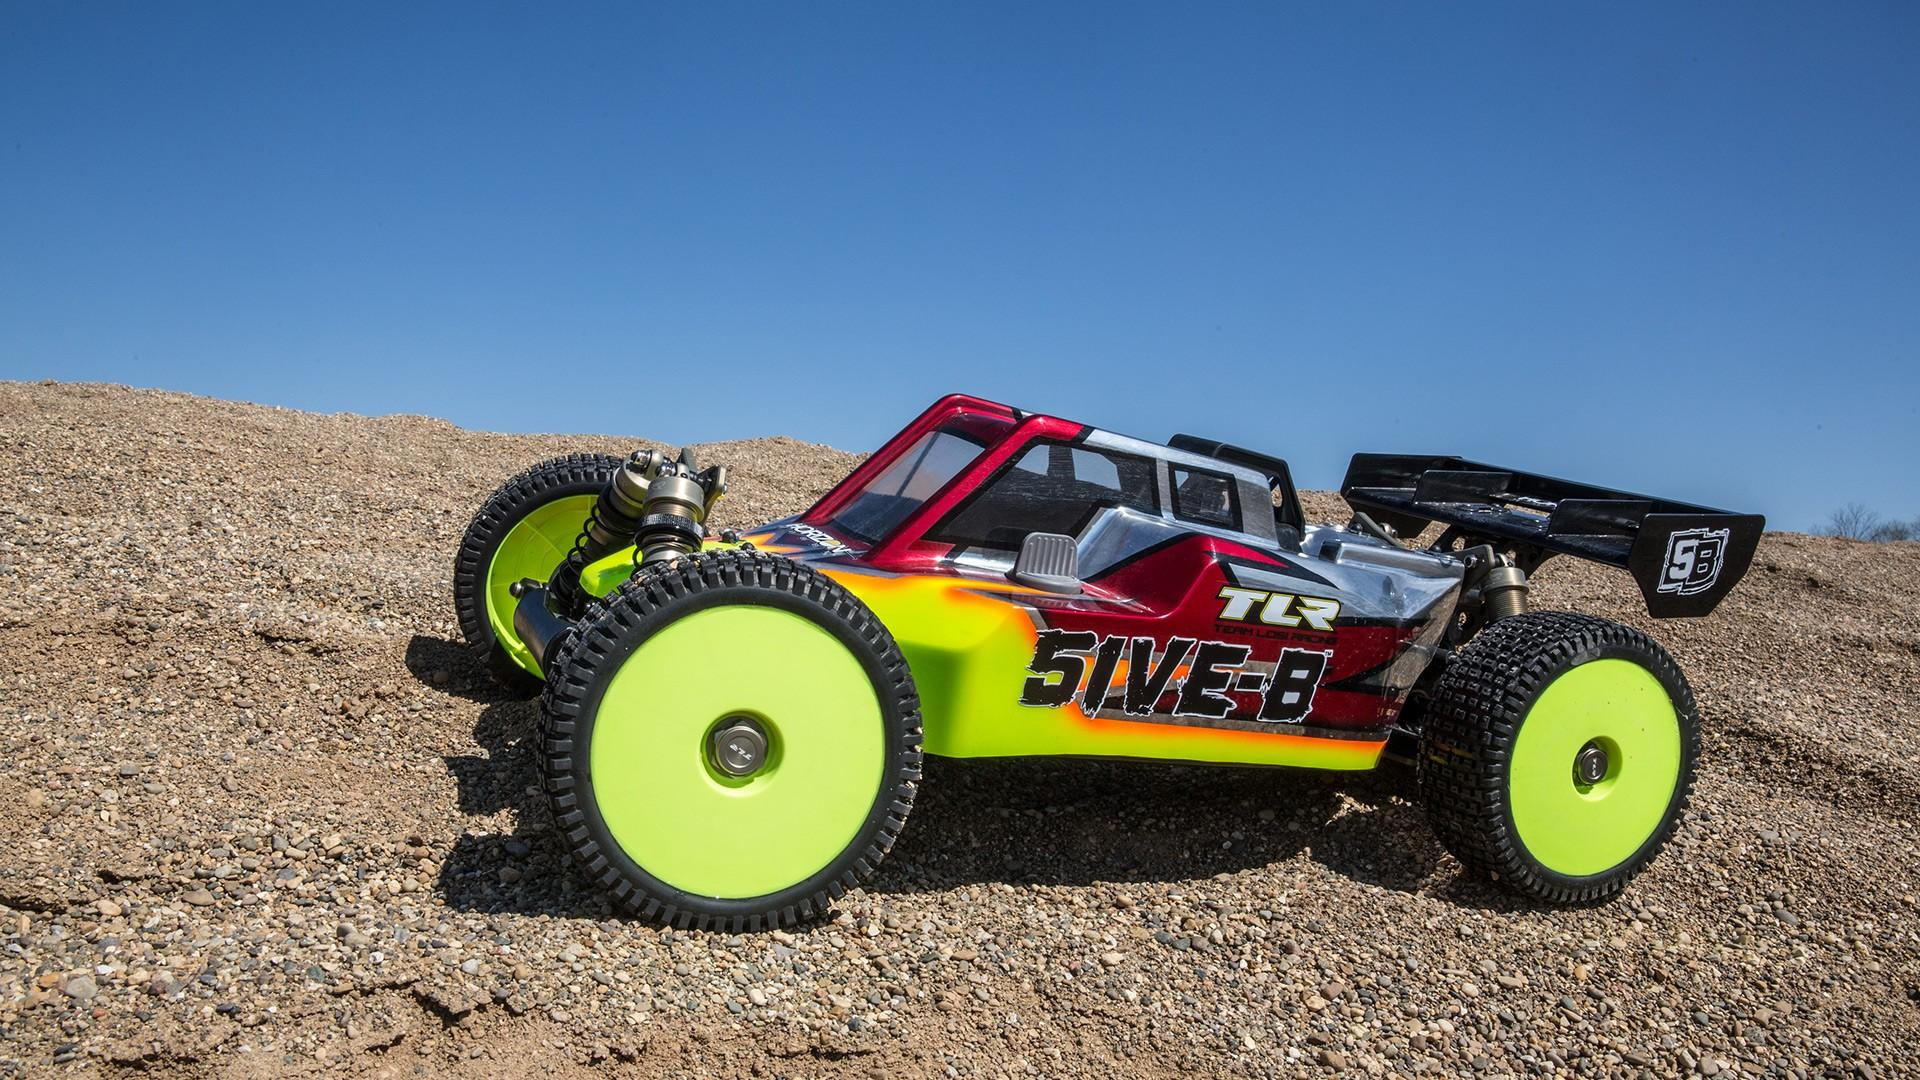 5IVE-B 1:5 4WD Buggy Race Kit | TLR